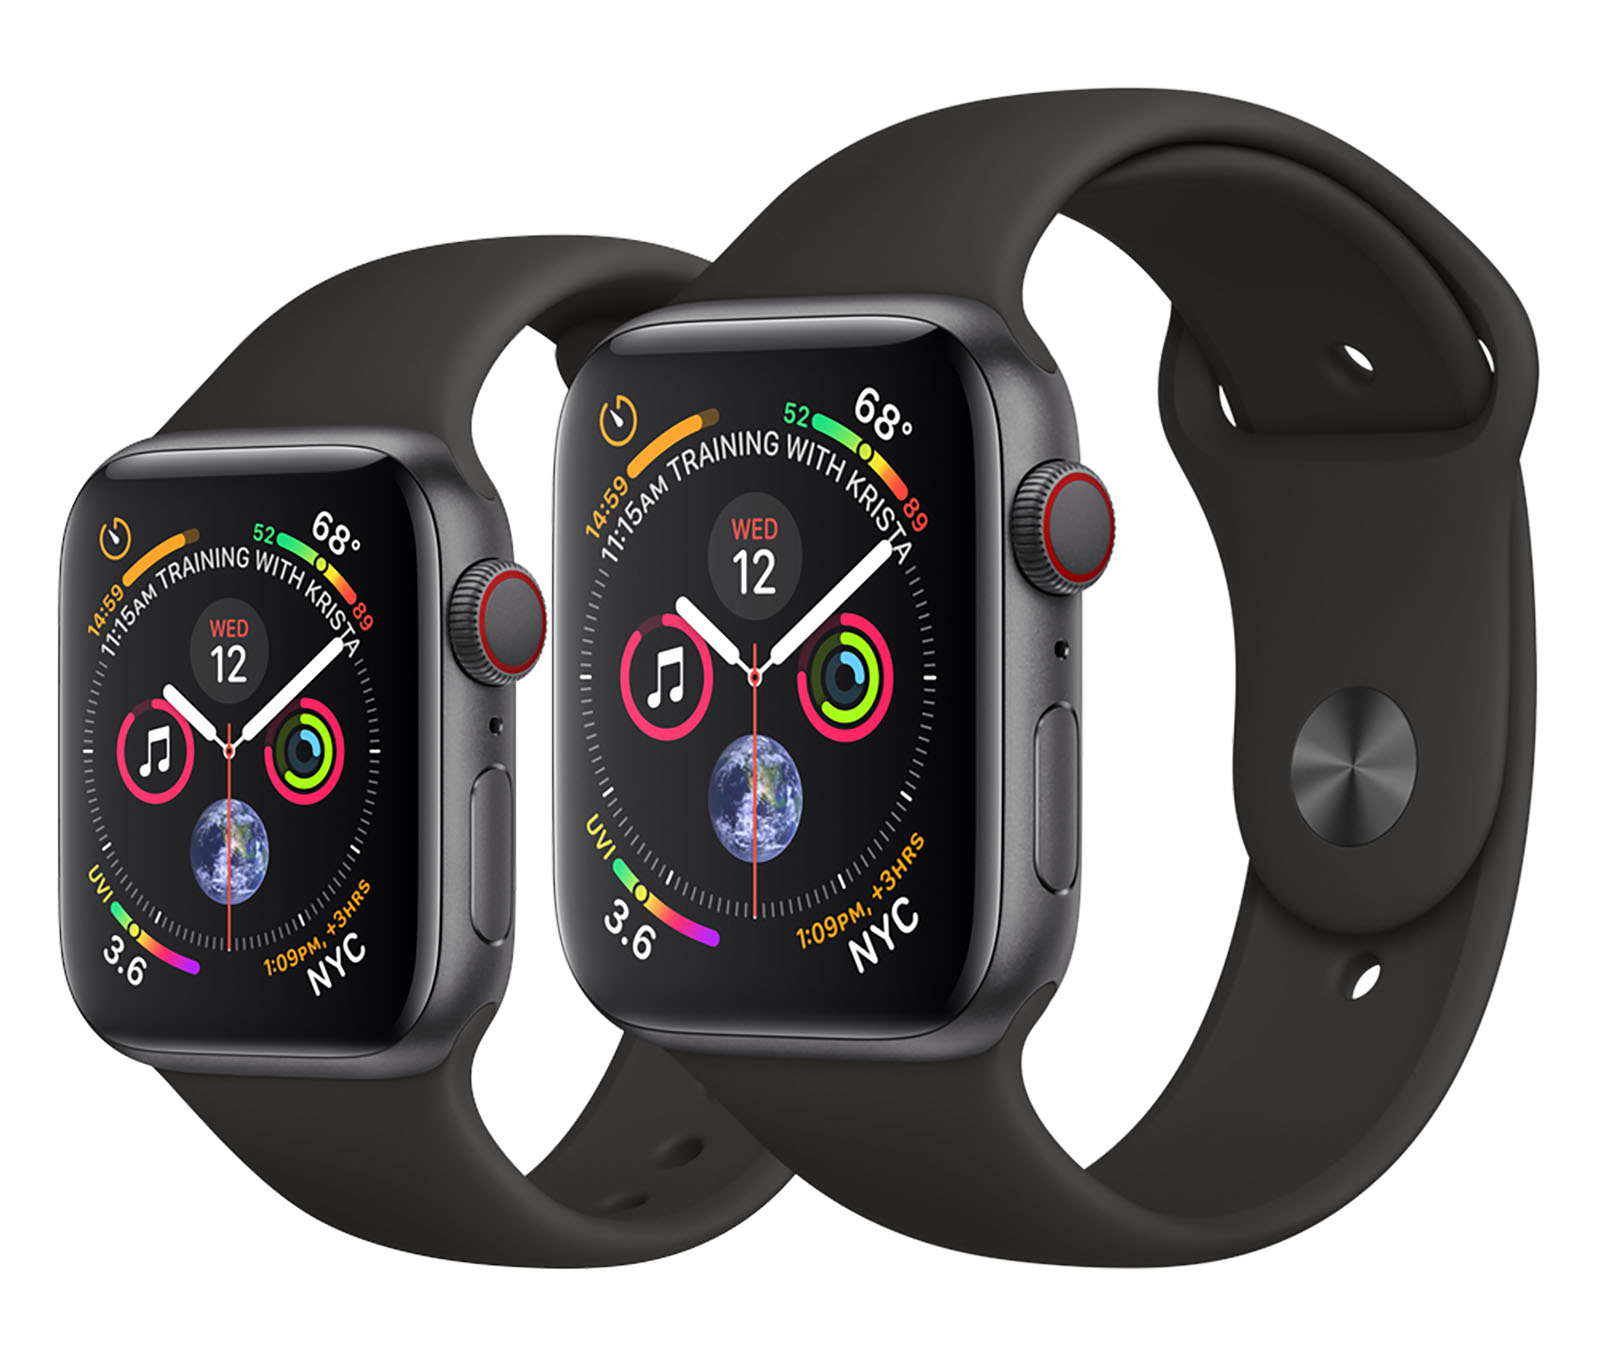 finest selection 3531d 261ce Apple Watch Series 4 (GPS + Cellular)| AppleInsider